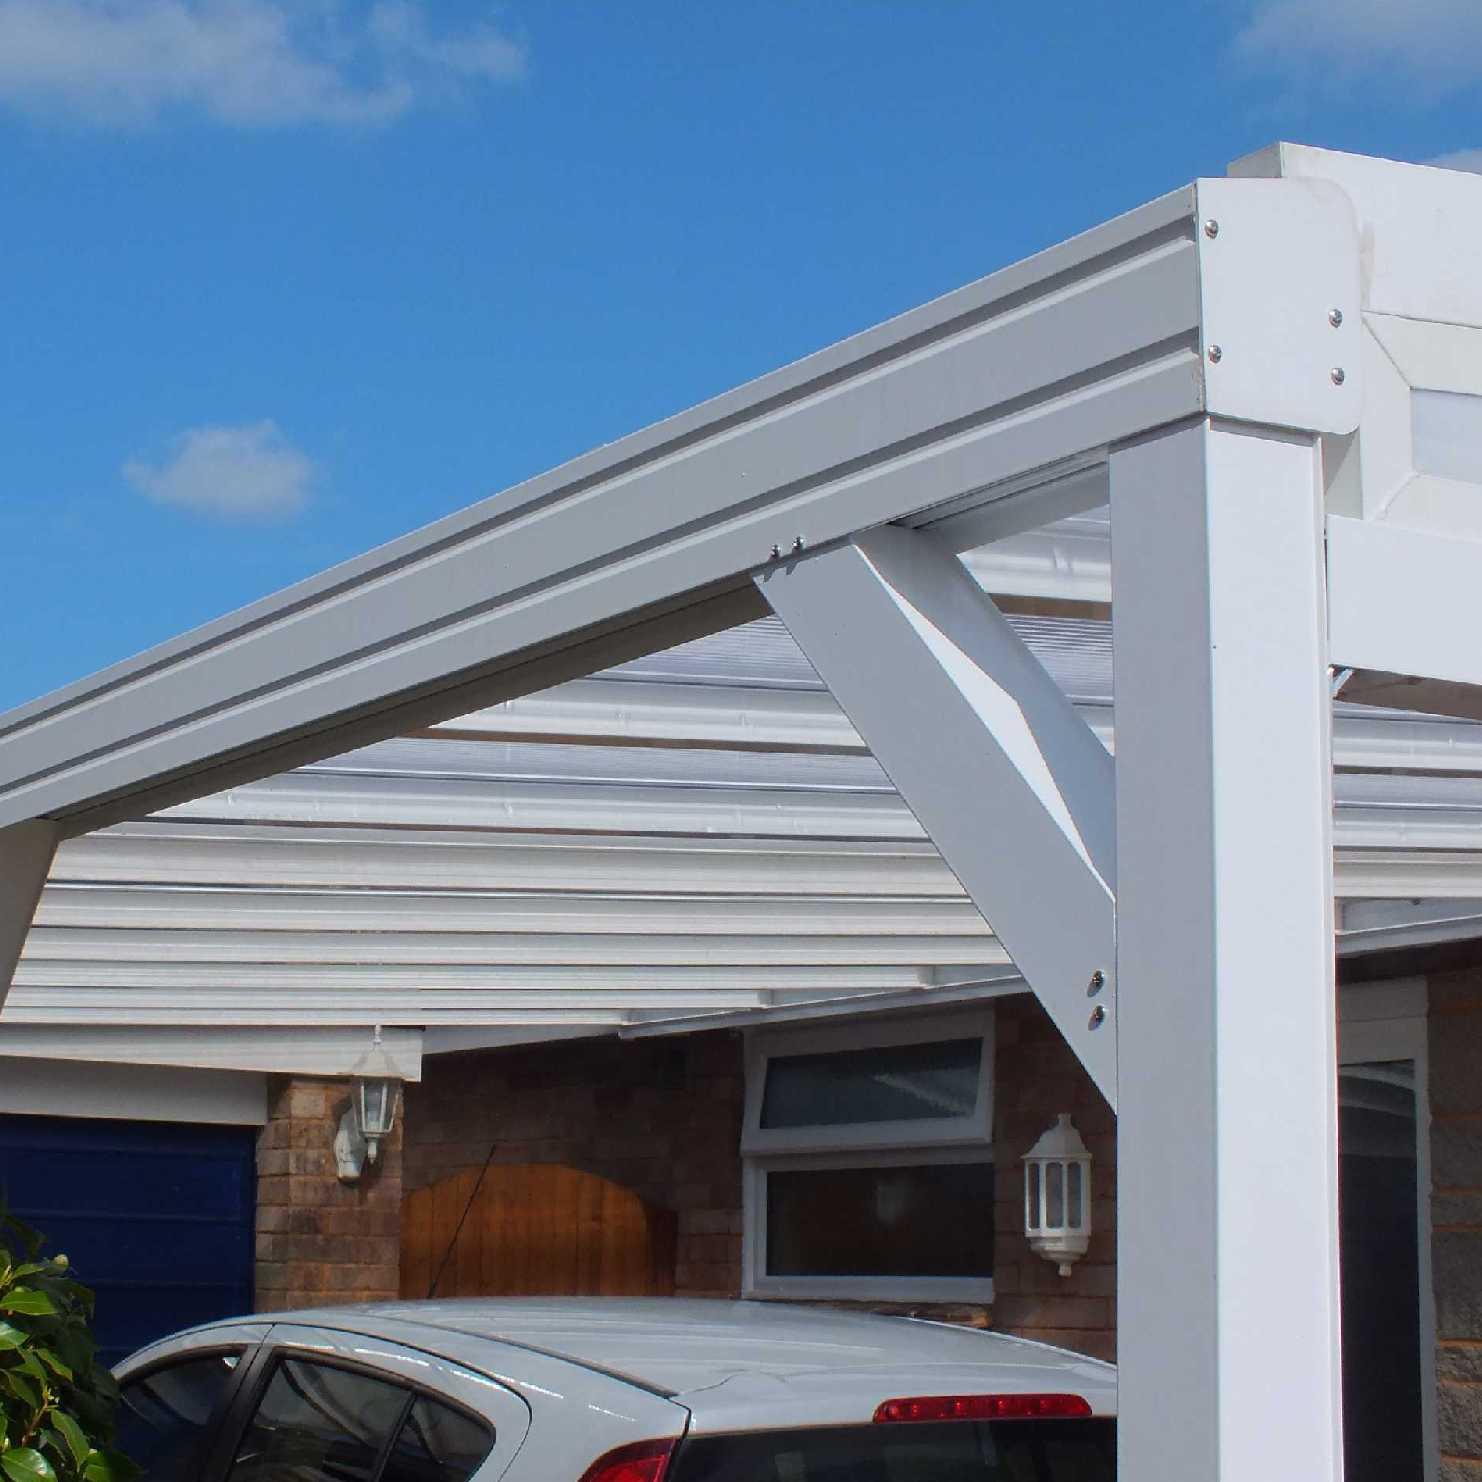 Great deals on Omega Smart Lean-To Canopy with 16mm Polycarbonate Glazing - 11.6m (W) x 3.0m (P), (5) Supporting Posts